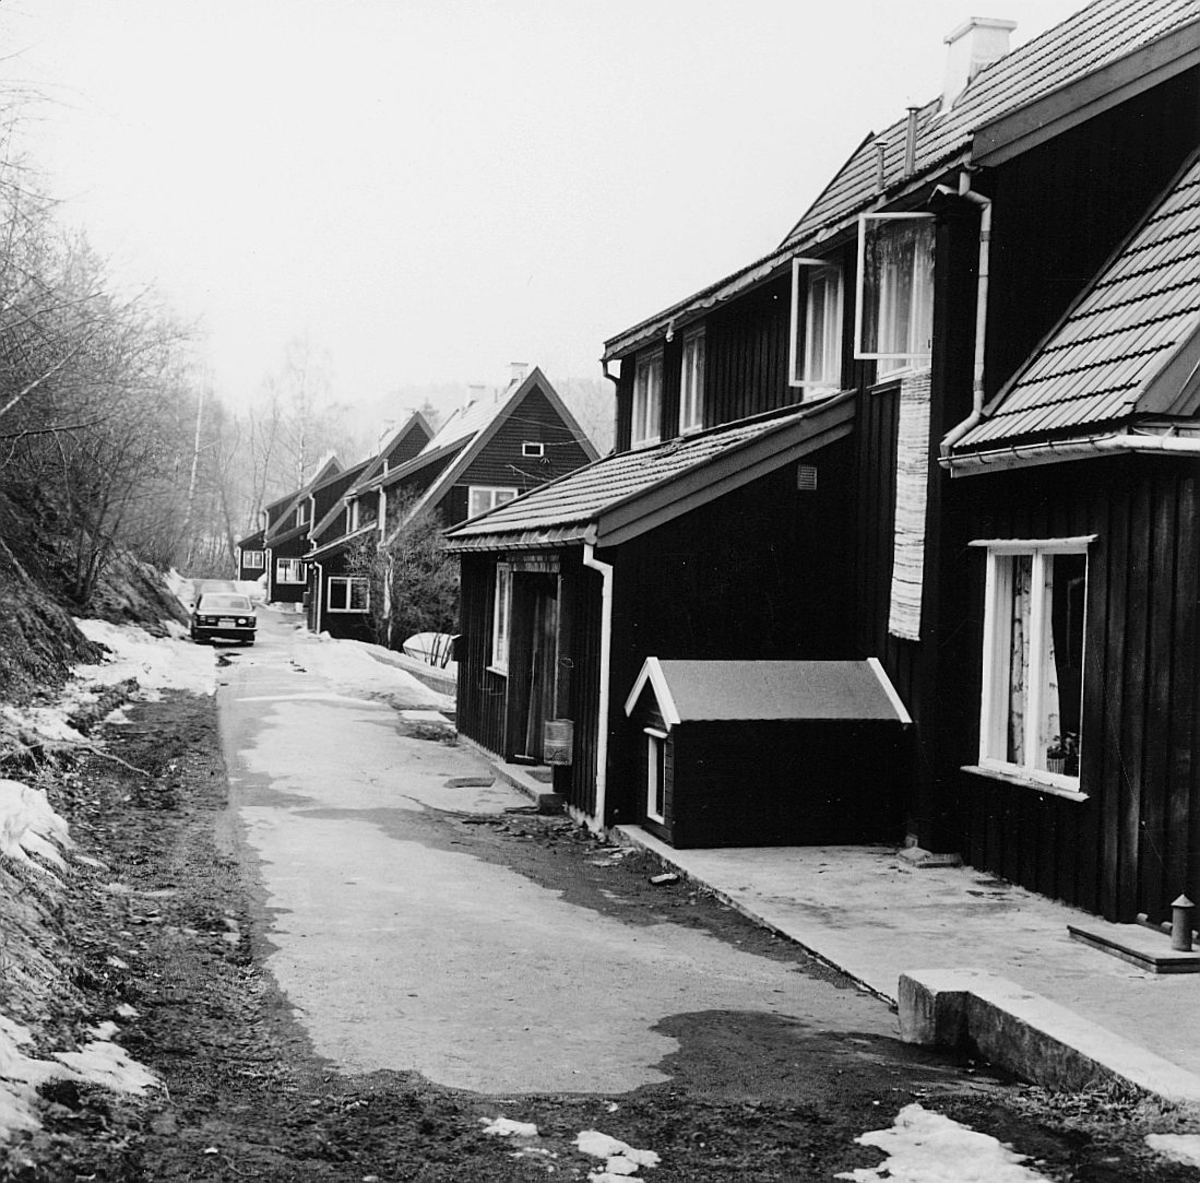 postskolen, Sjøstrand bad, april 1974, eksteriør